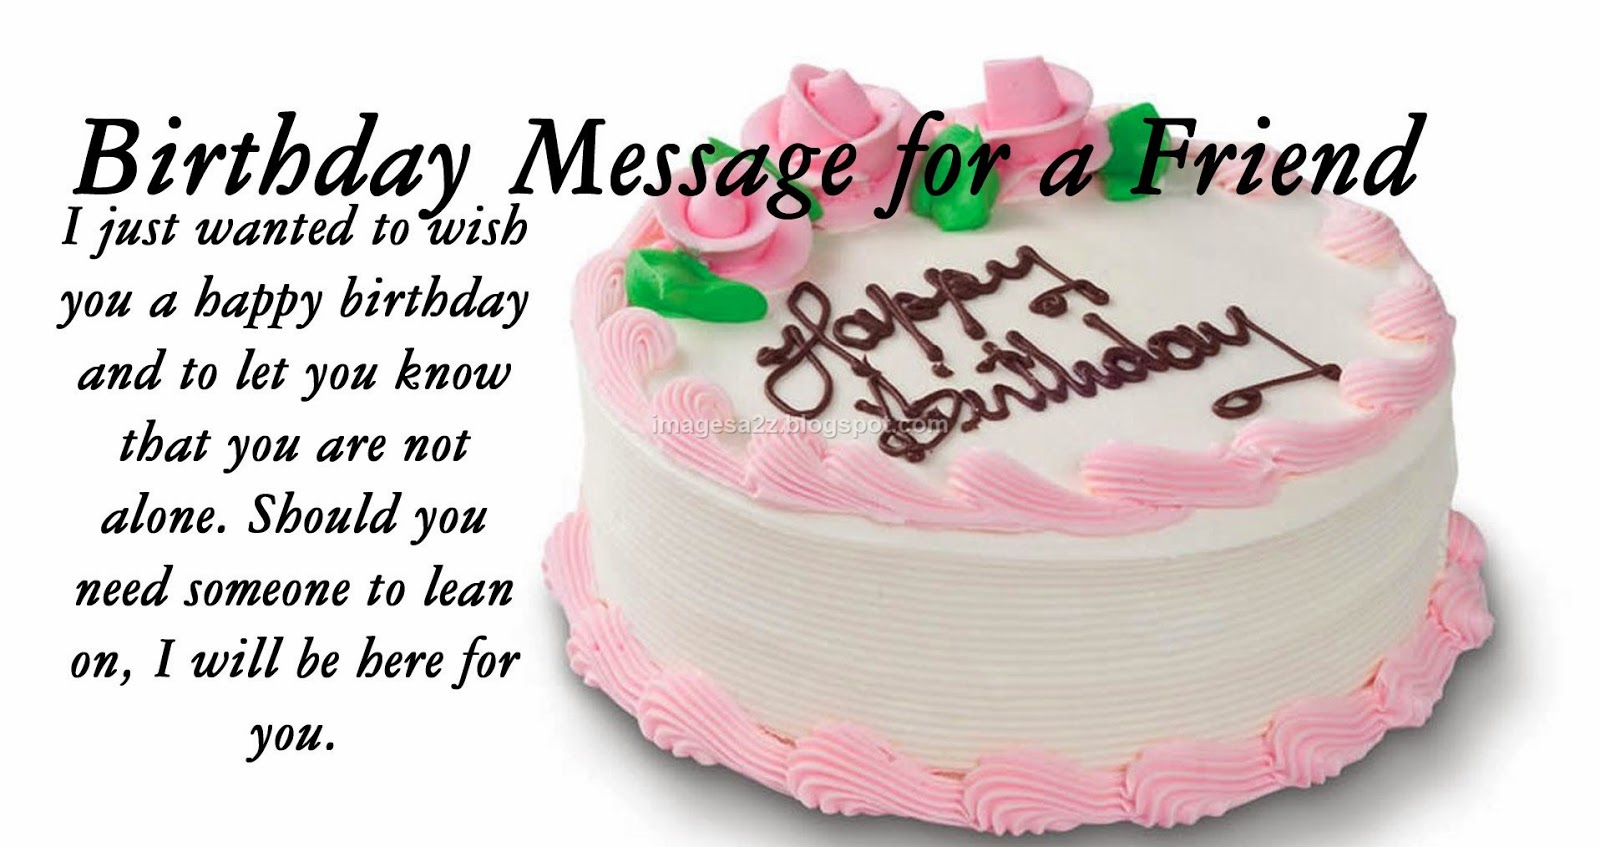 Birthday Cake Images Messages : Quotes About Birthday Cake. QuotesGram